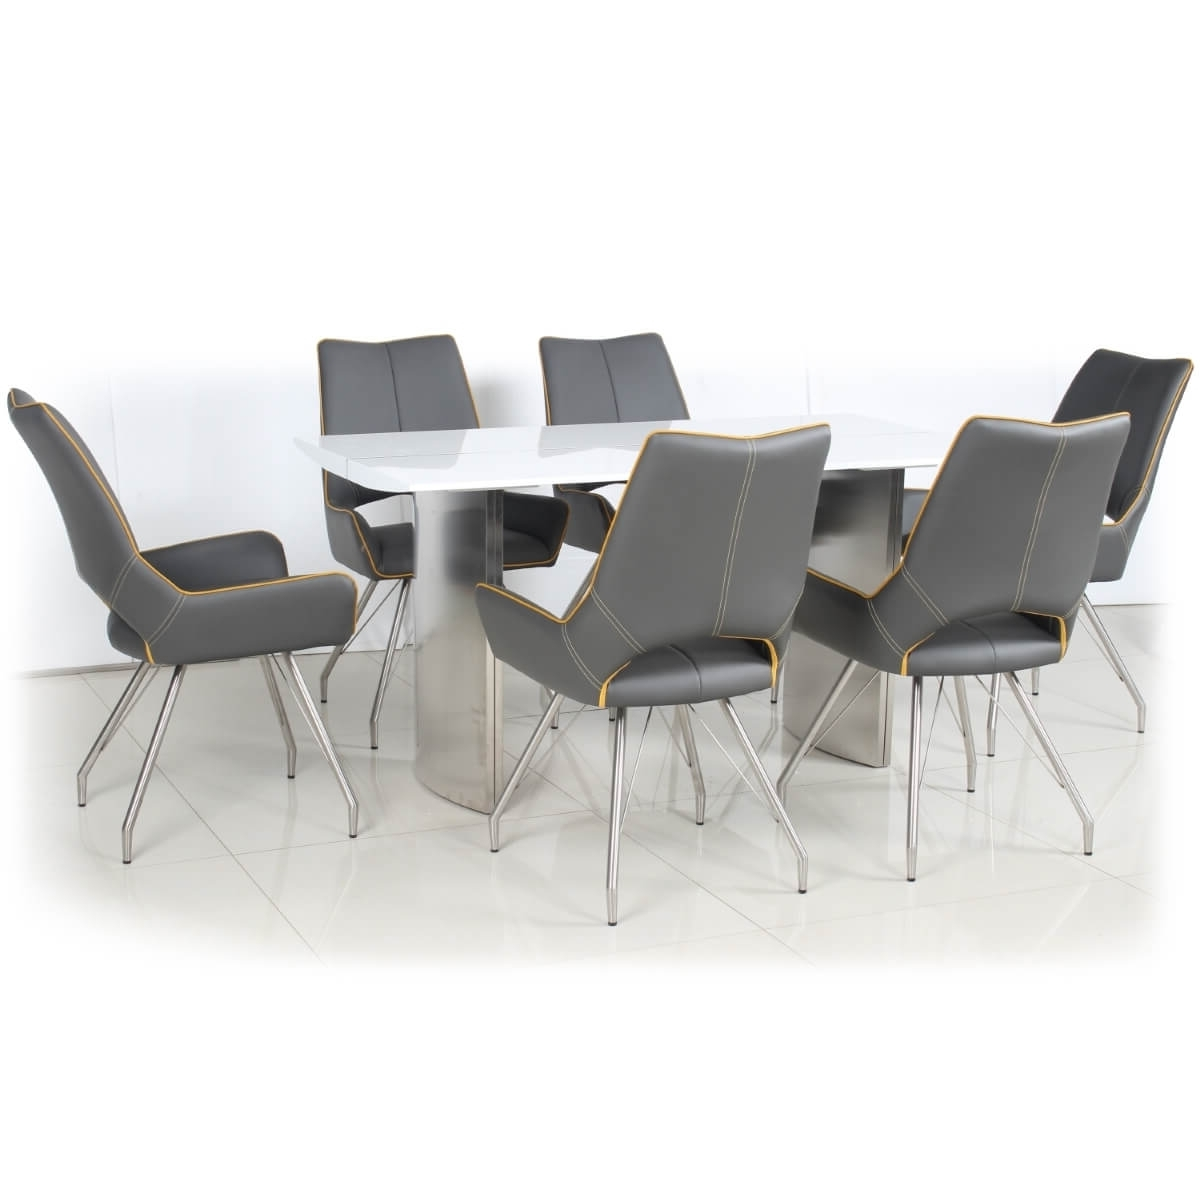 White Dining Tables And 6 Chairs In Favorite Dining Set – White High Gloss Dining Table And 6 Grey Dining Chairs (View 19 of 25)